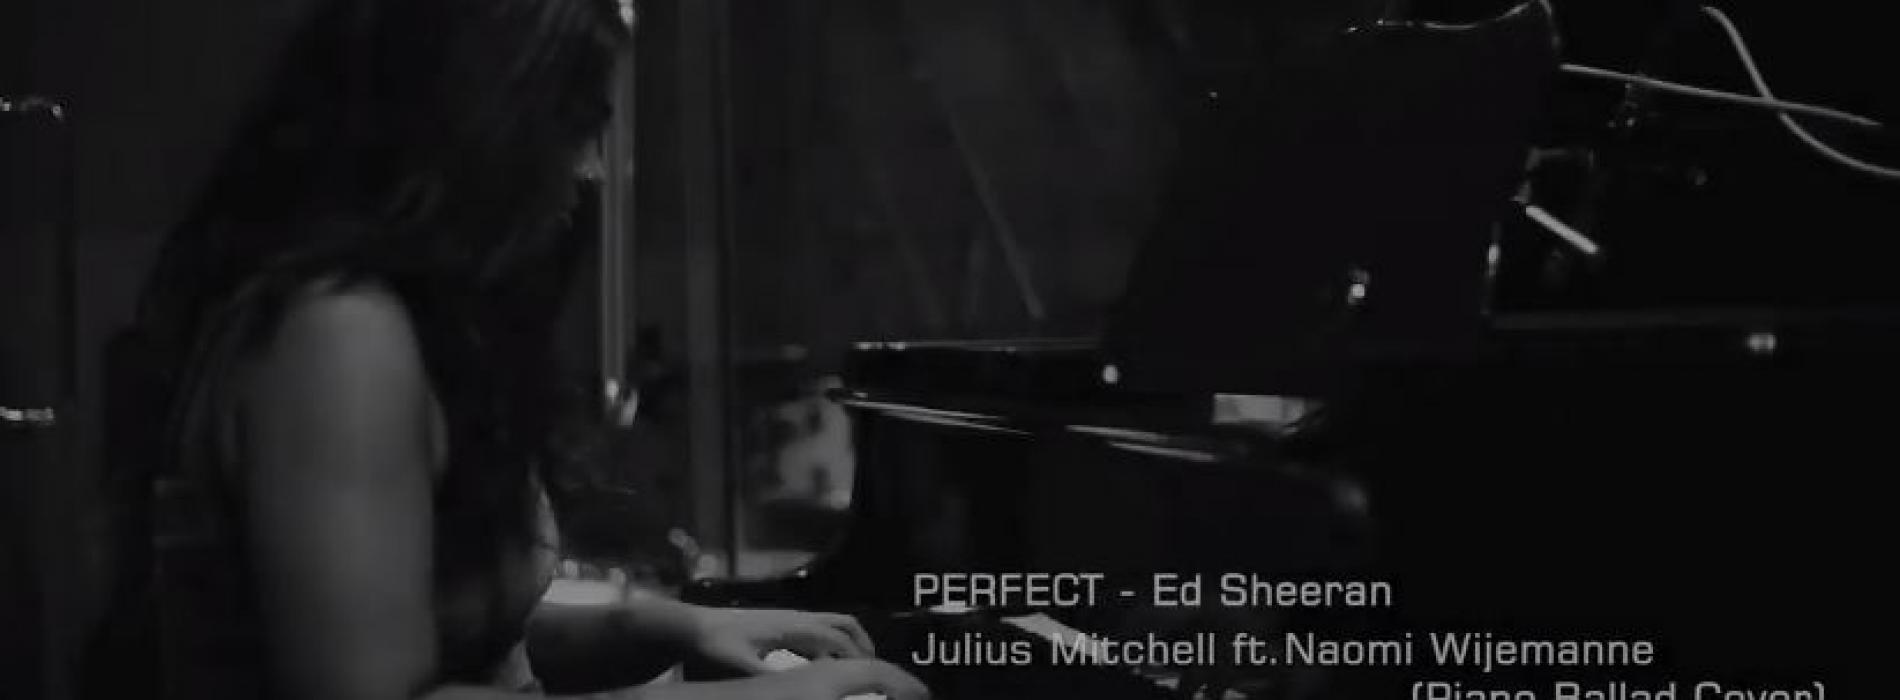 Perfect – Ed Sheeran (Julius Mitchell feat Naomi Wijemanne (piano ballad cover)